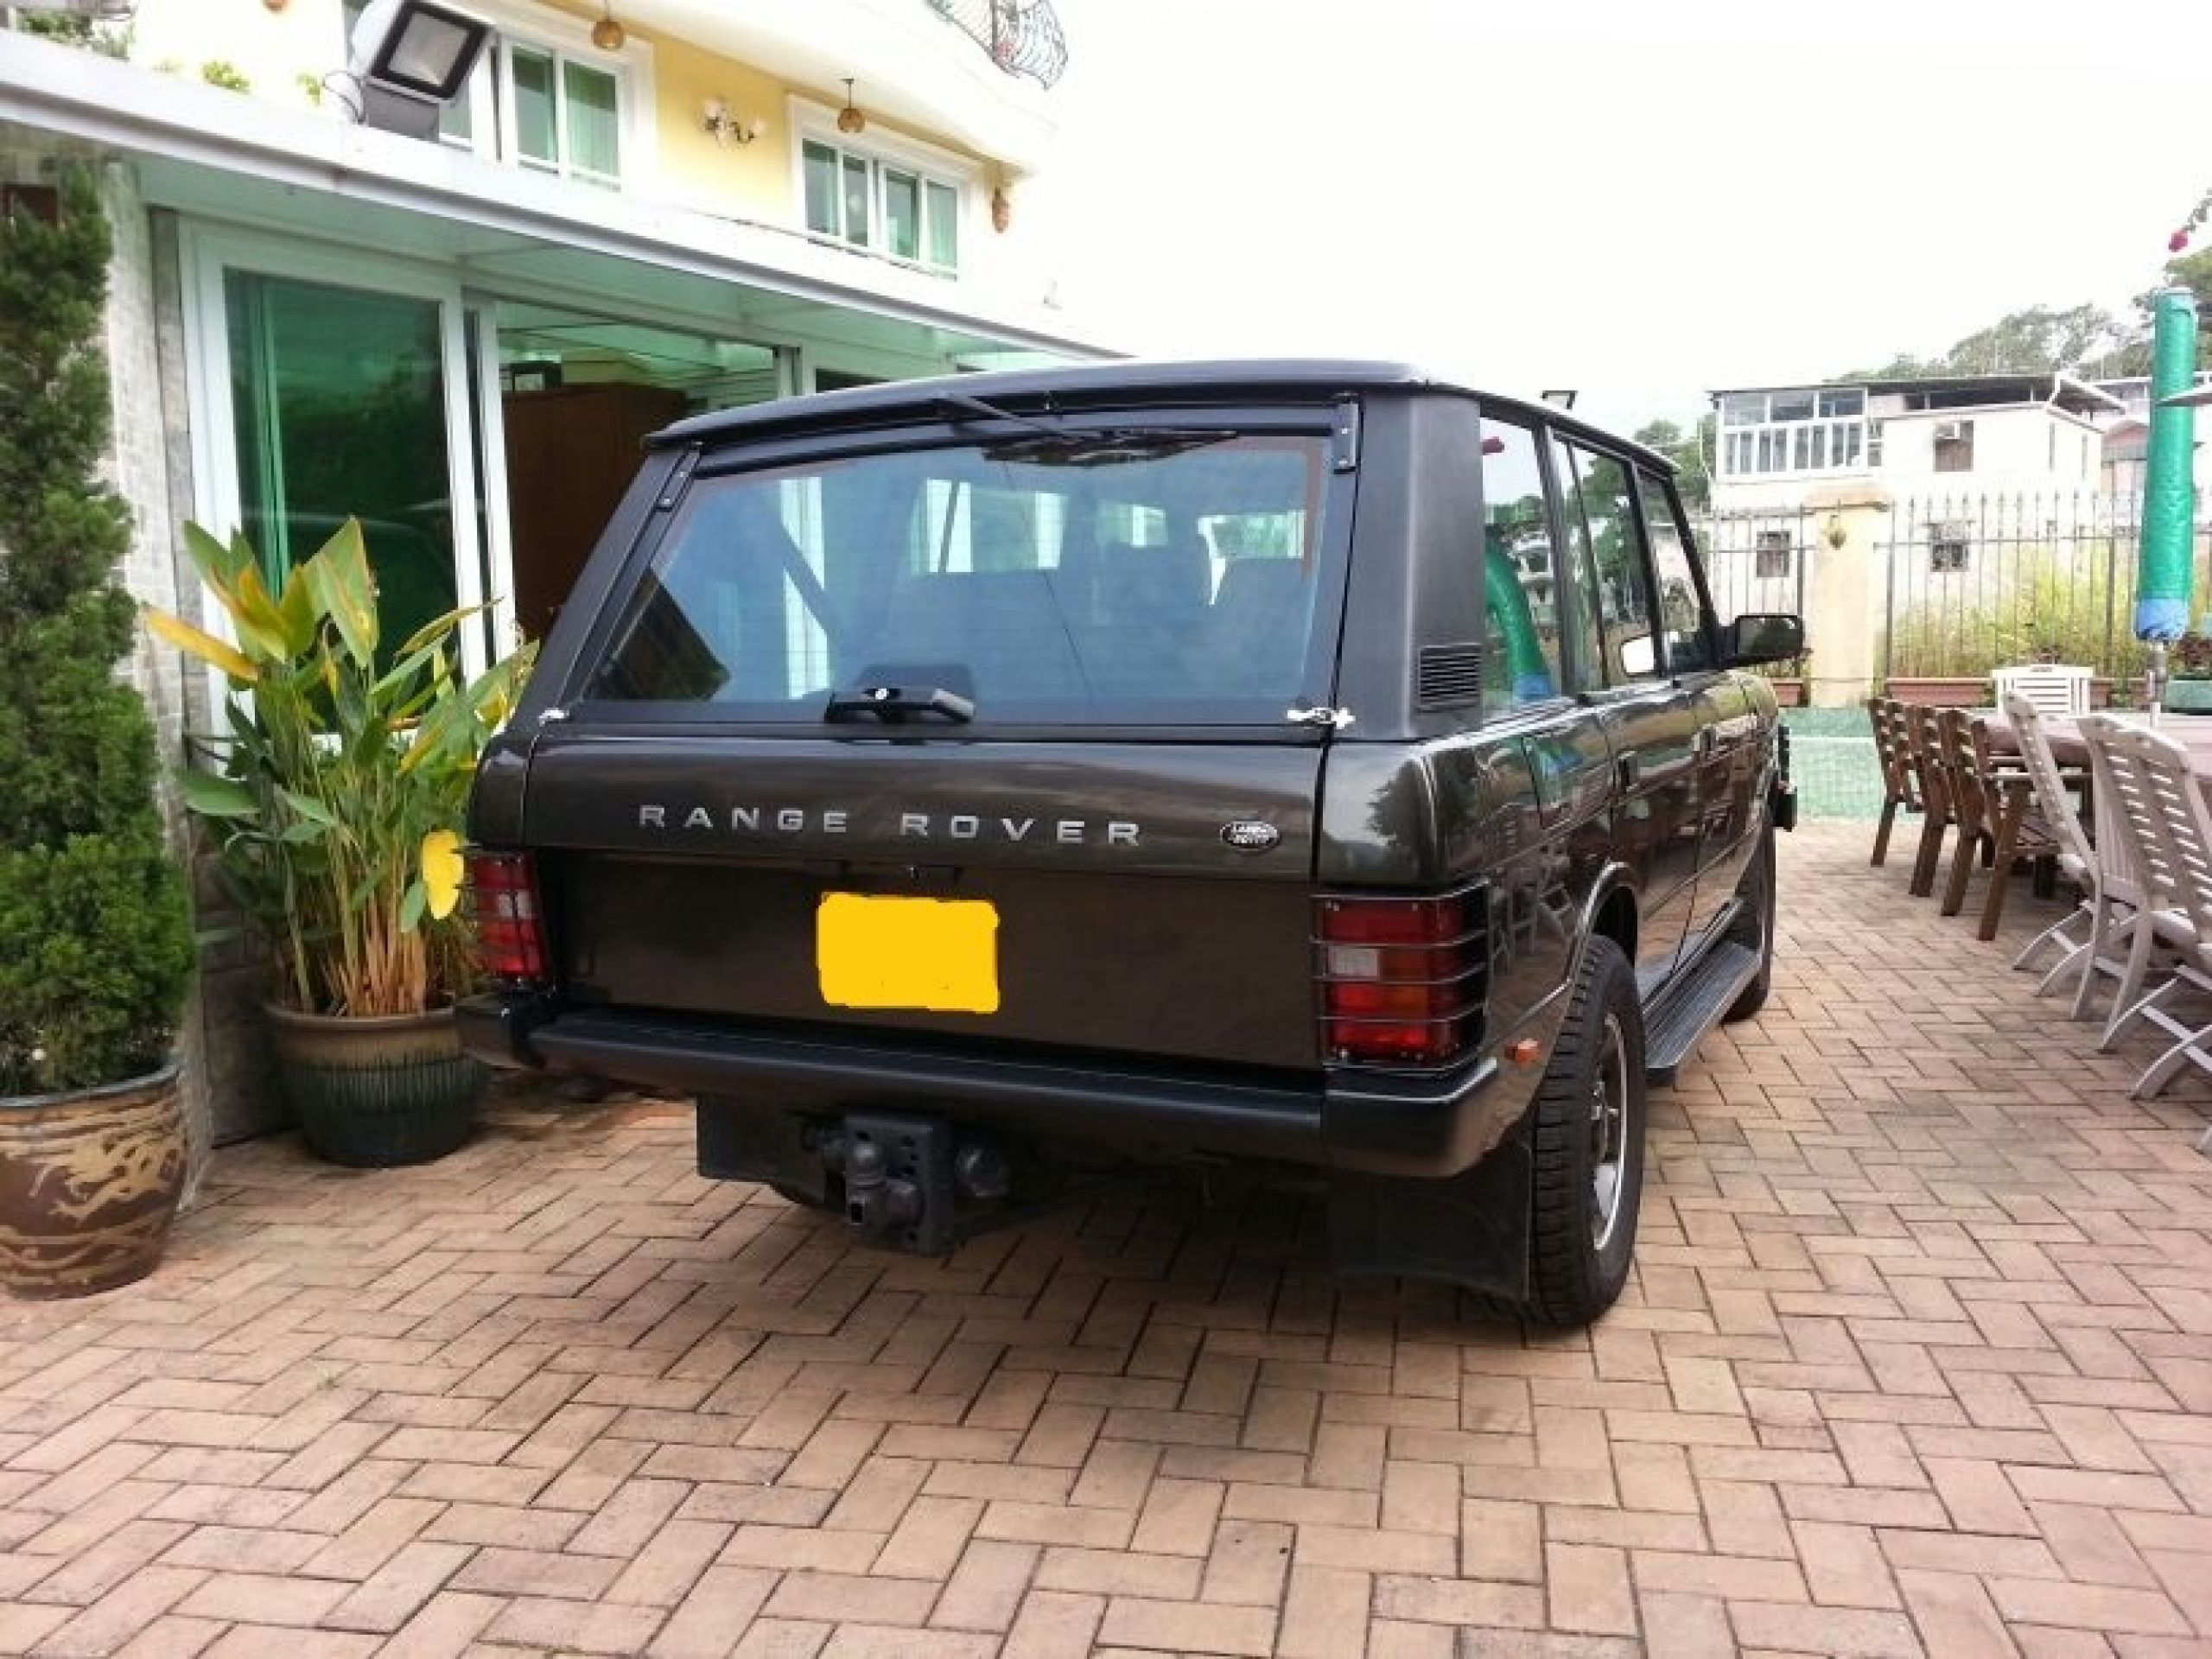 1972 Range Rover Discovery Diesel SE